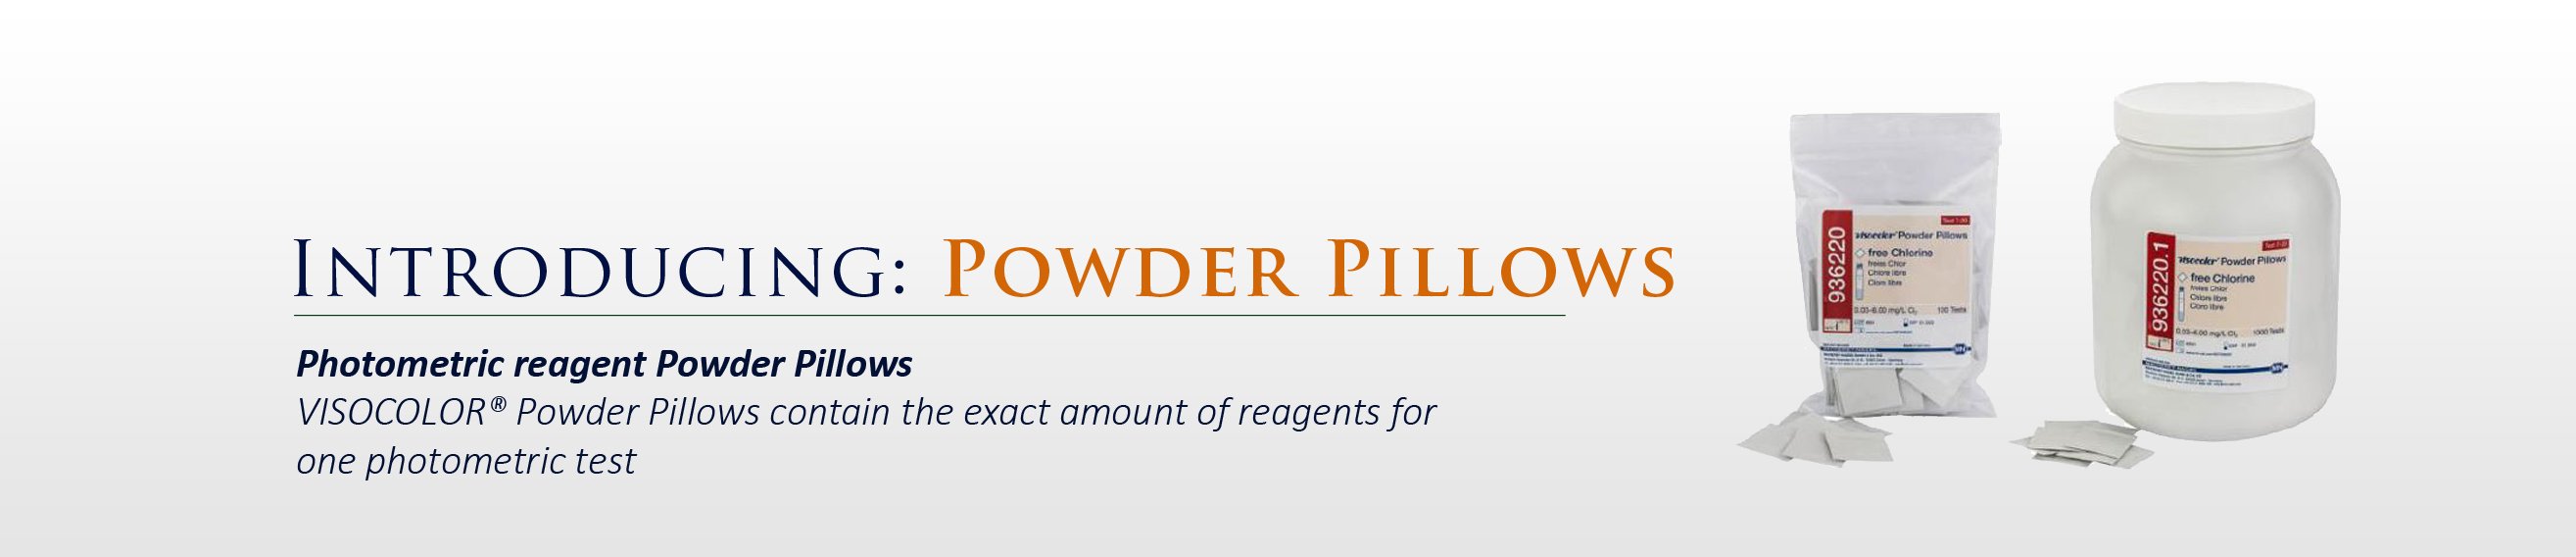 PowderPillows